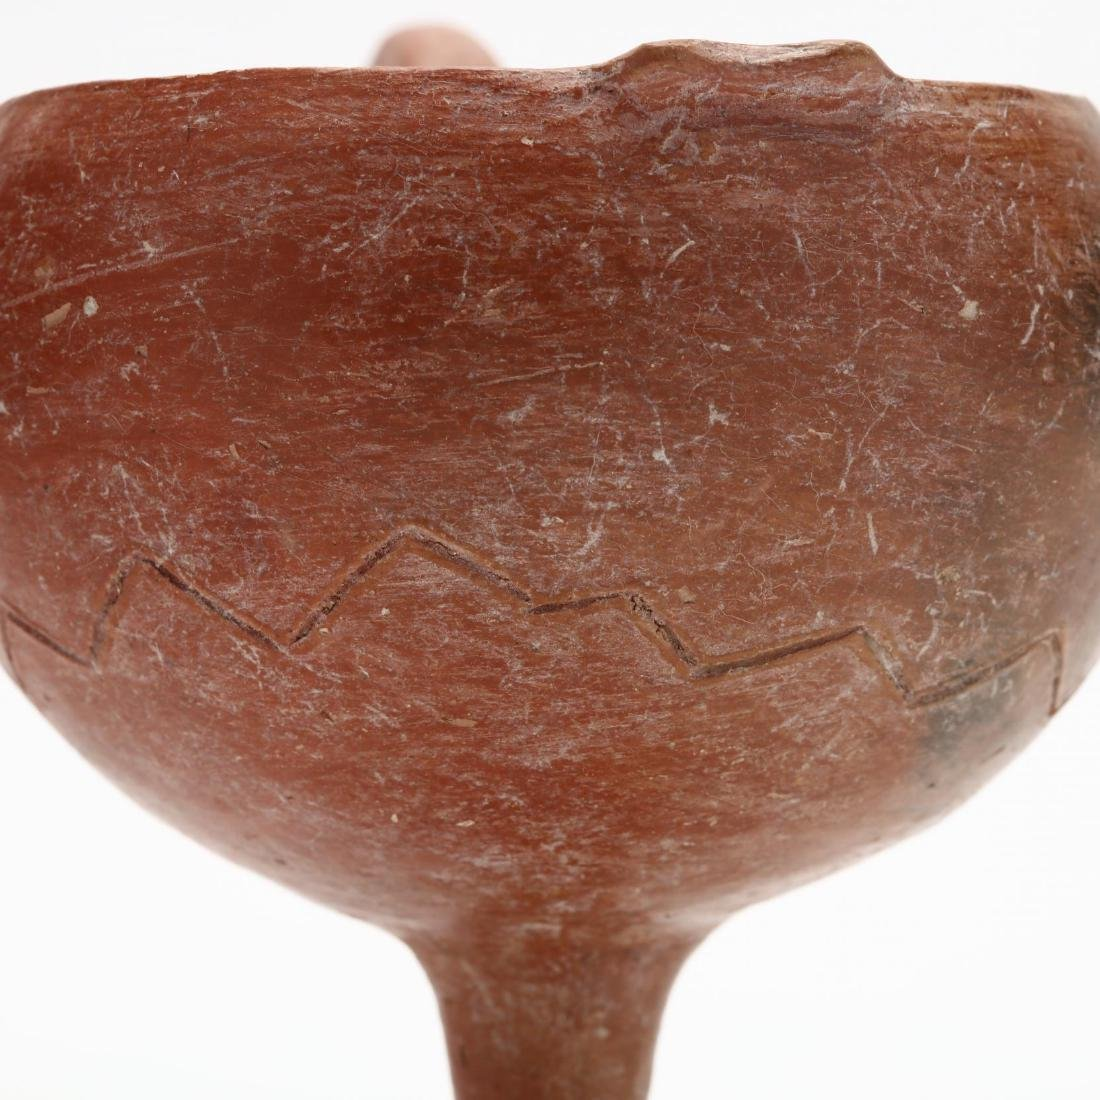 Cypriot Early Bronze Age Polished Red Ware Funnel - 3